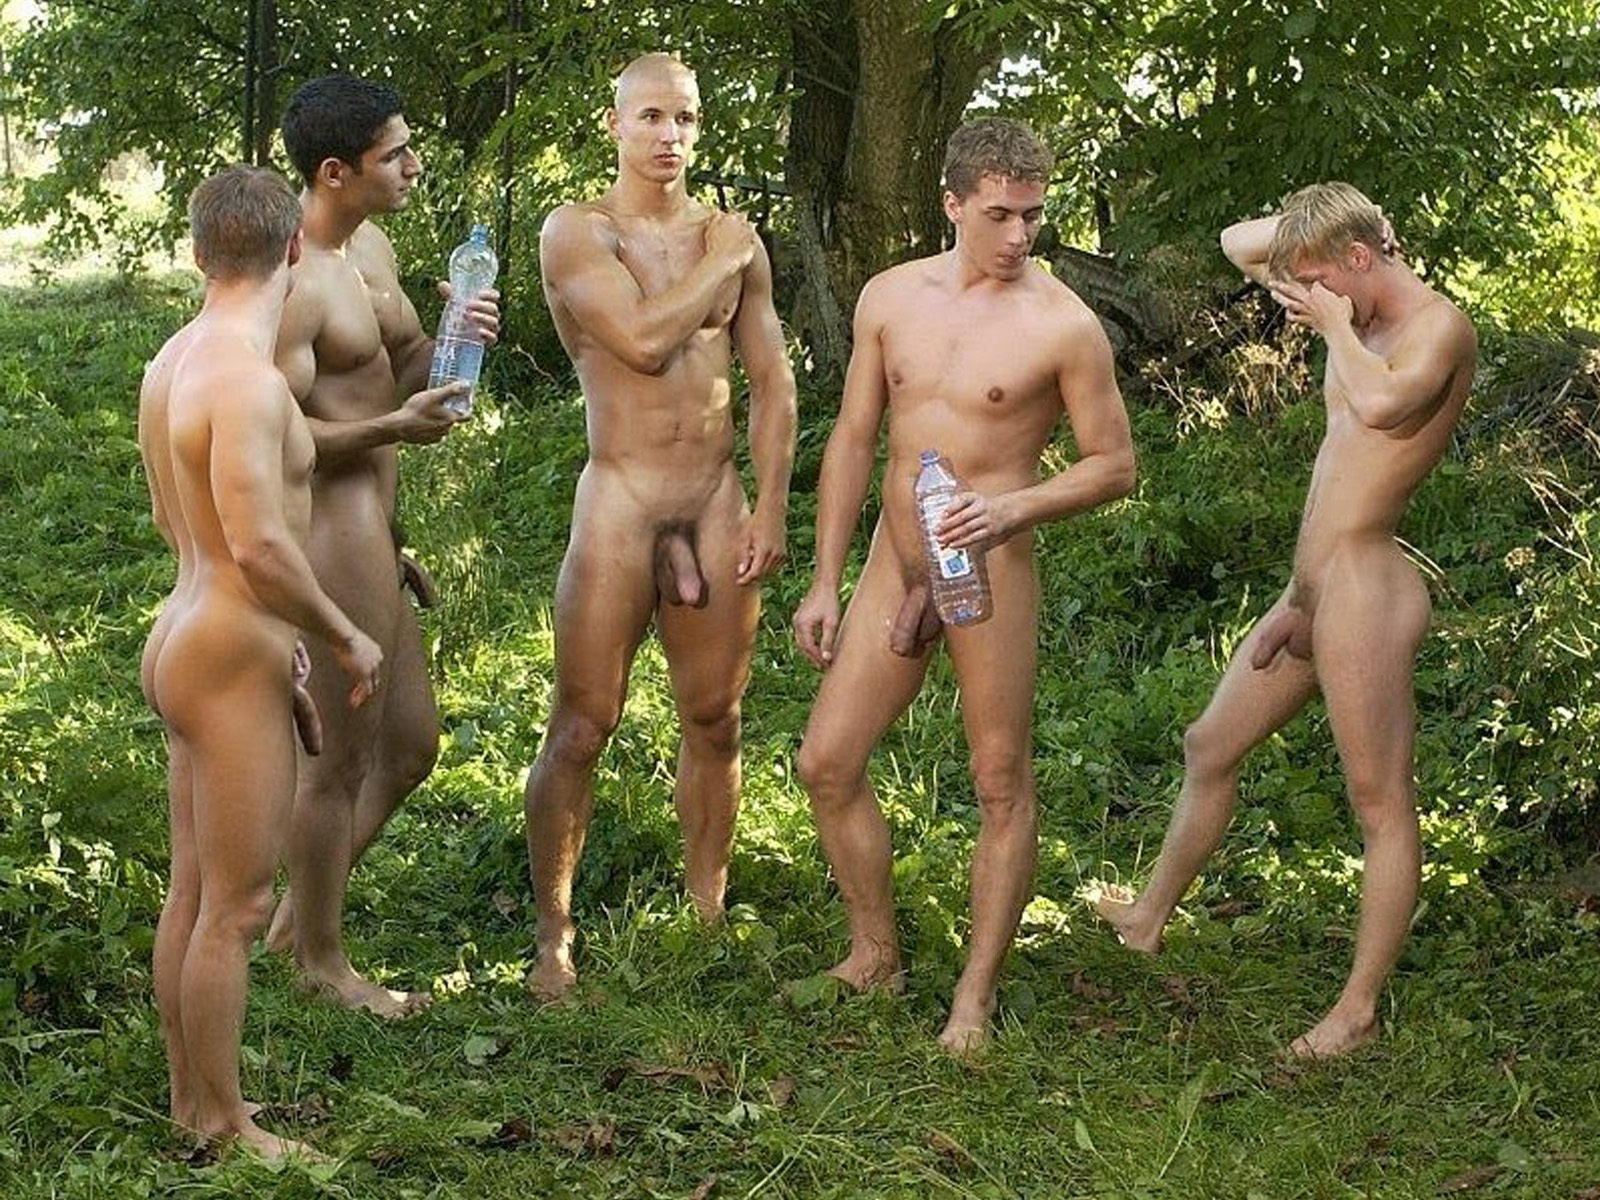 All the men stripped naked